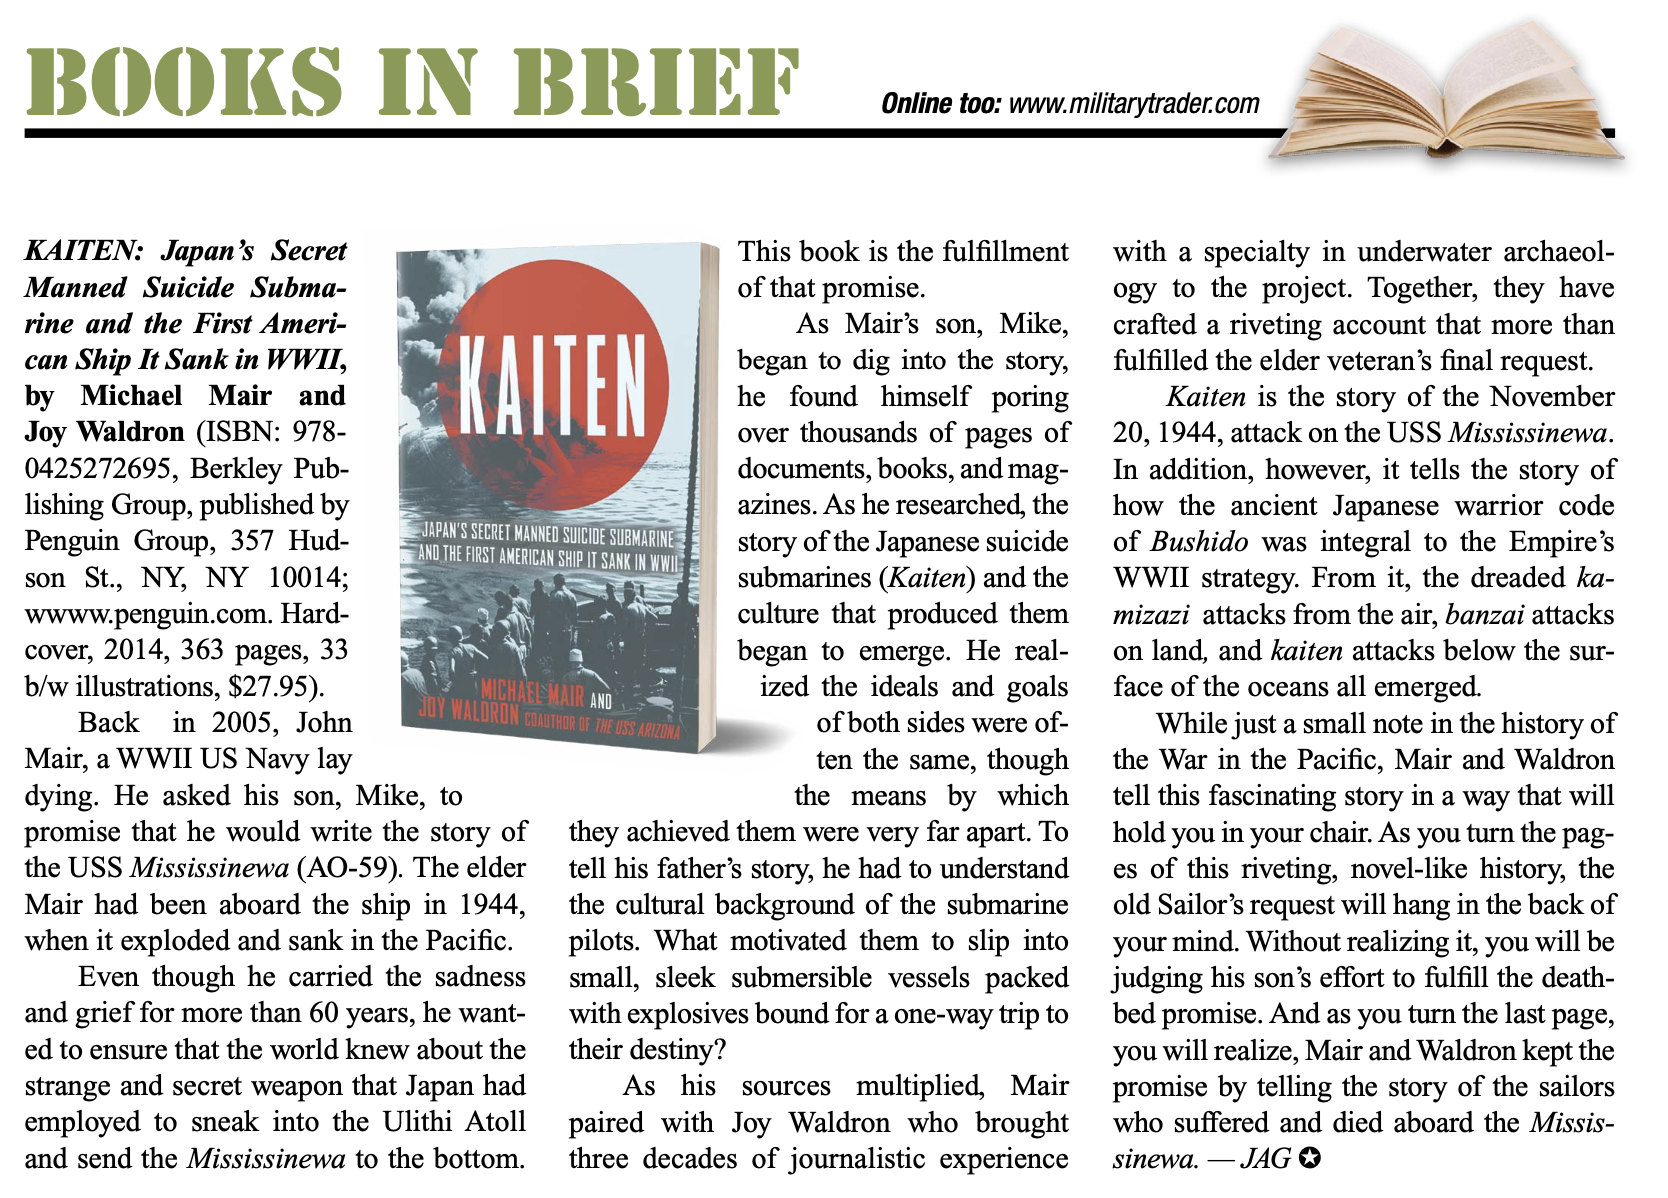 review of book, Kaiten.